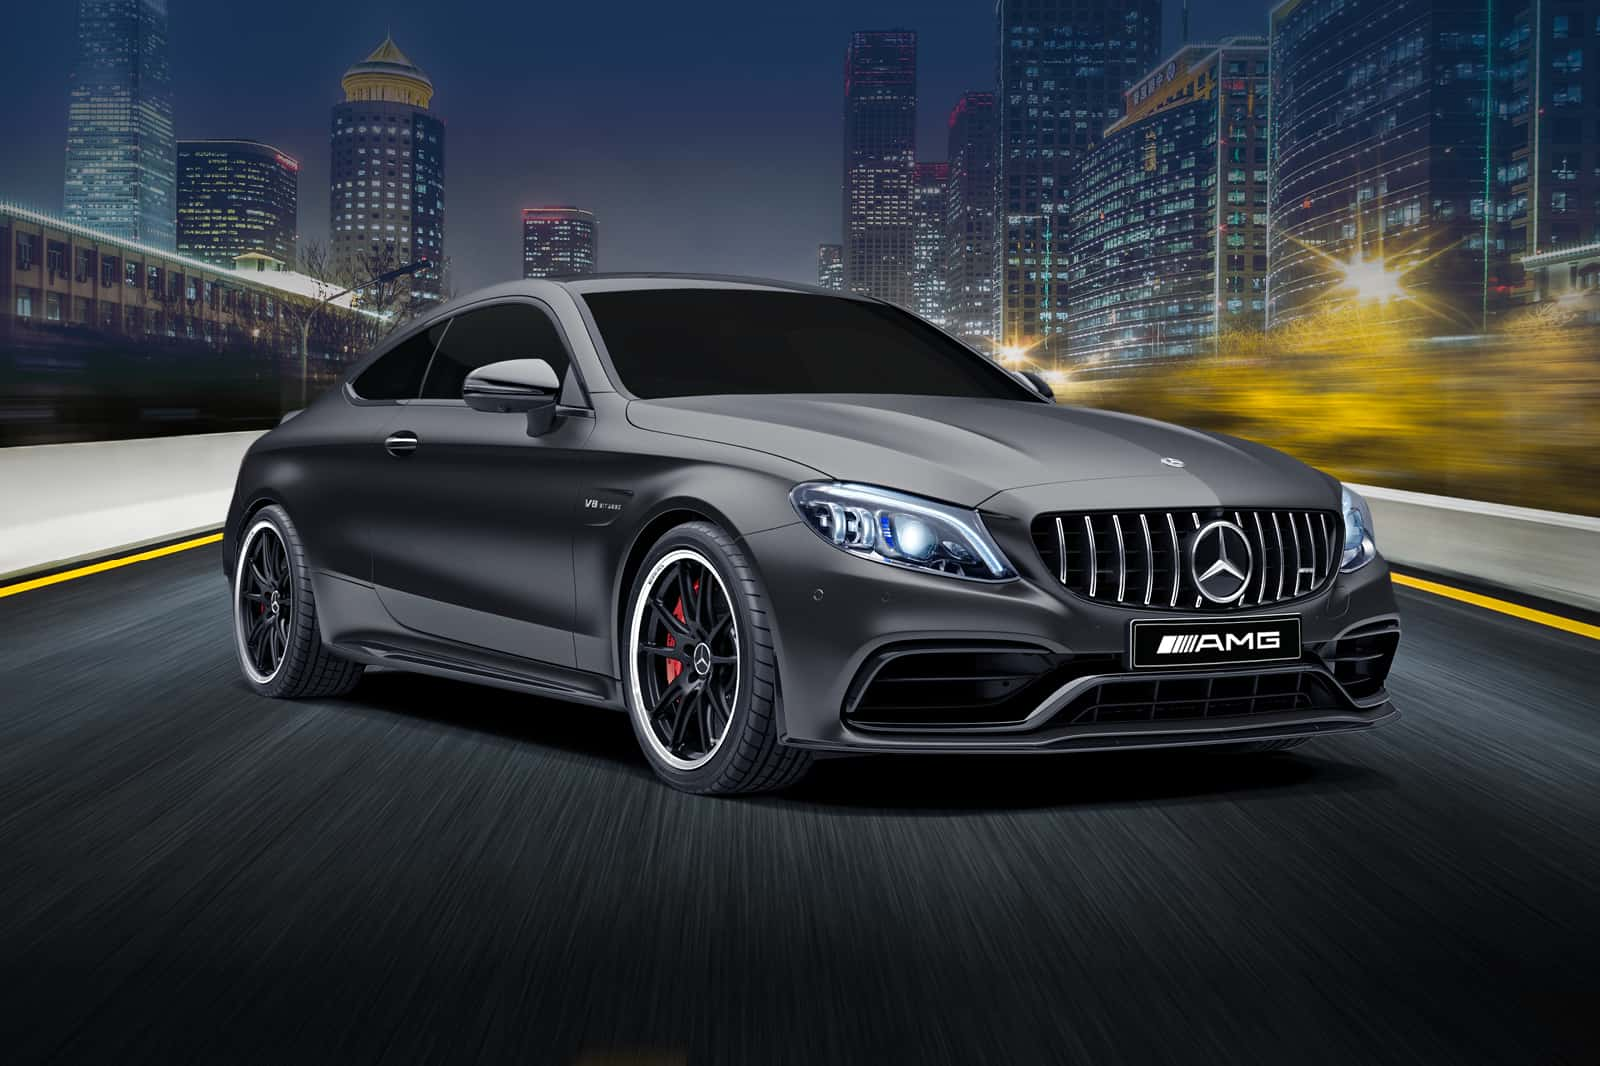 MS Limited Edition Draw 211 AMG C63 S Coupe